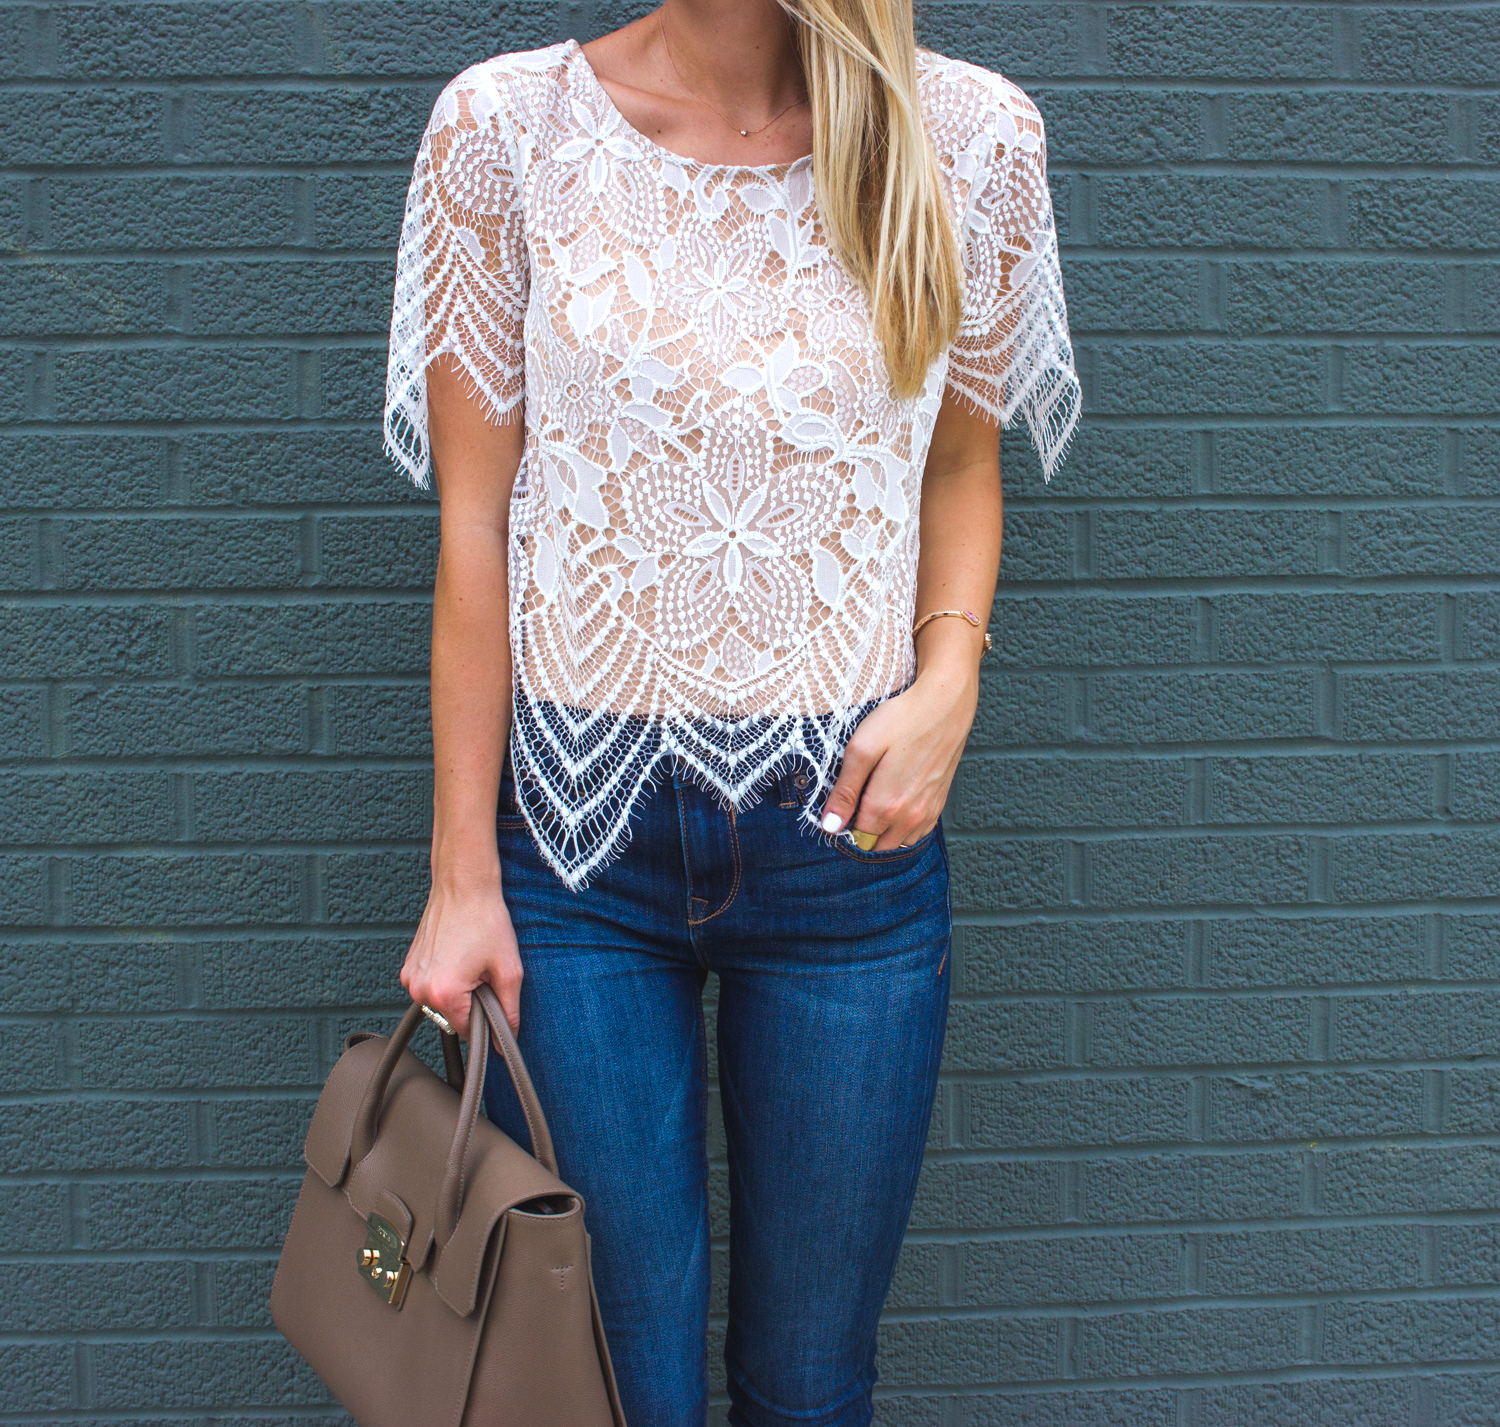 livvyland-blog-olivia-watson-date-night-express-skinny-jeans-lace-overlay-top-4